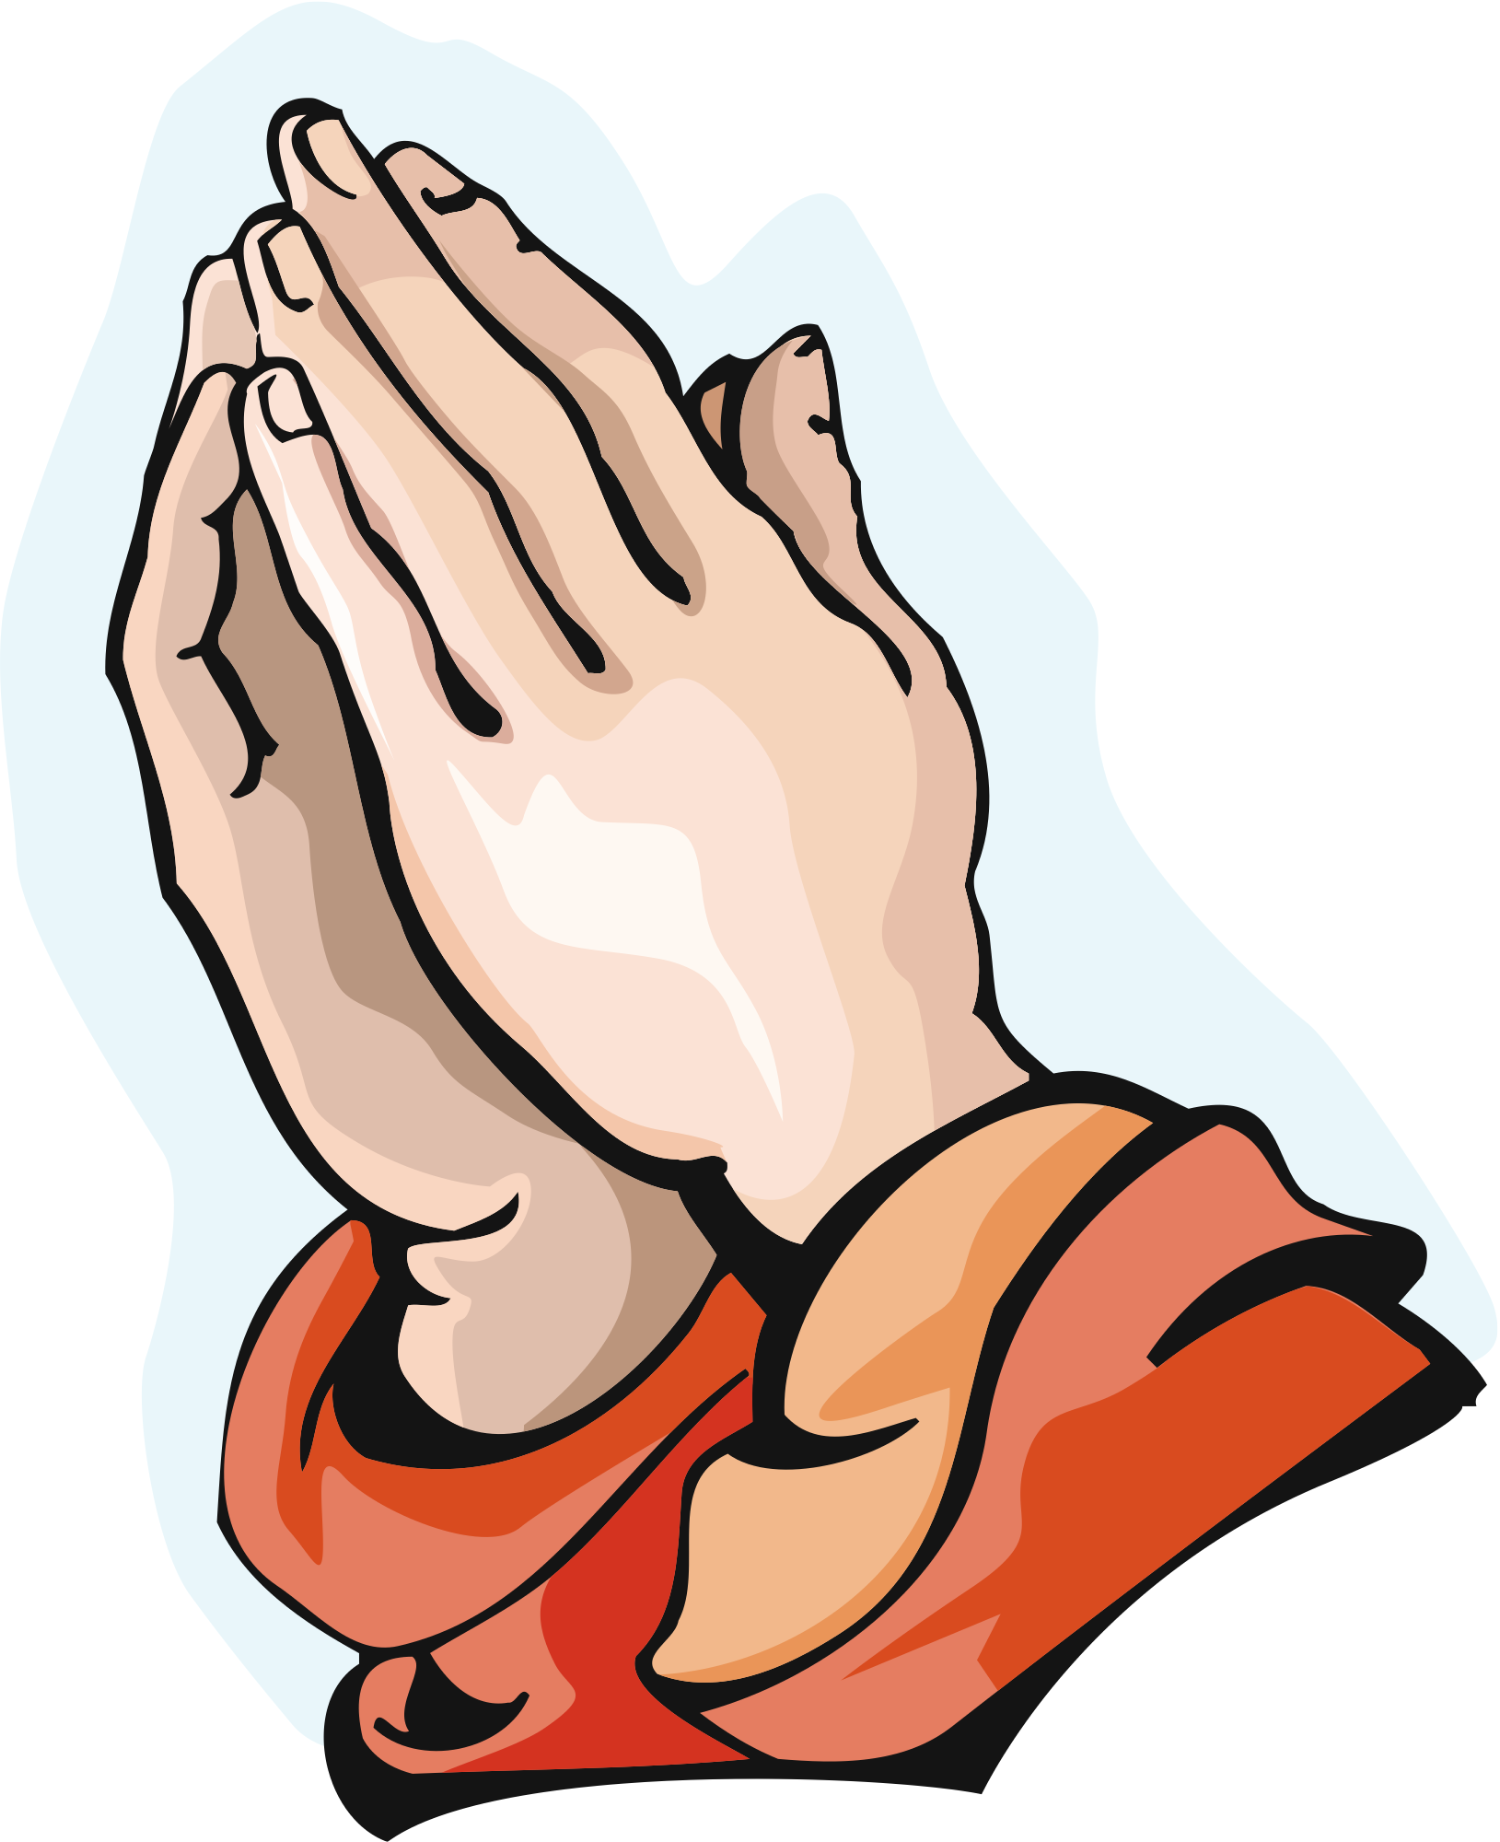 Open Praying Hands Clipart | Clipart Panda - Free Clipart ...